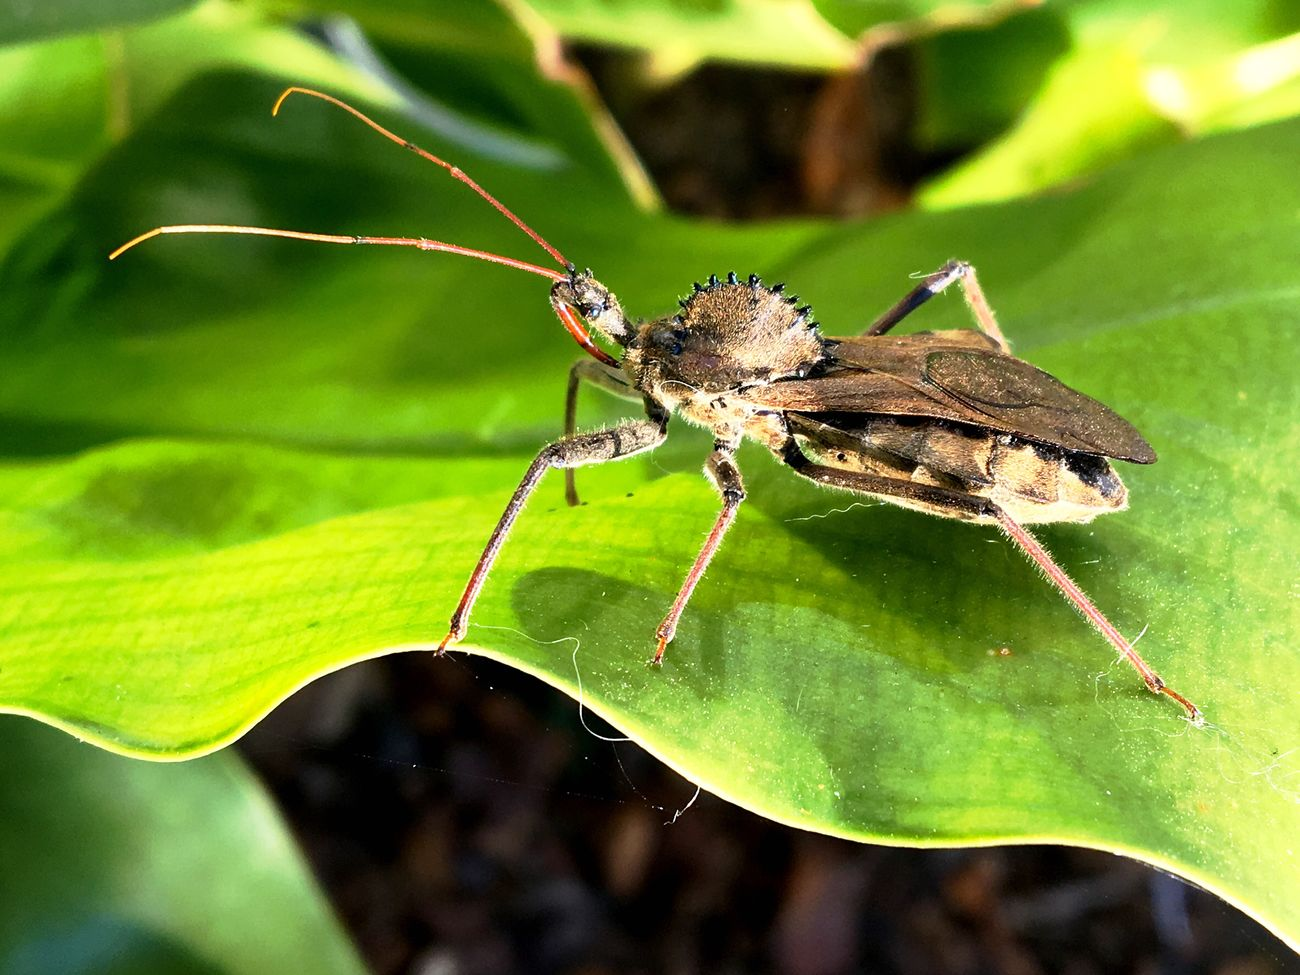 Animal Themes Stinkbug Insect Nature Beauty In Nature Outdoors Close-up Plant Leaf No People